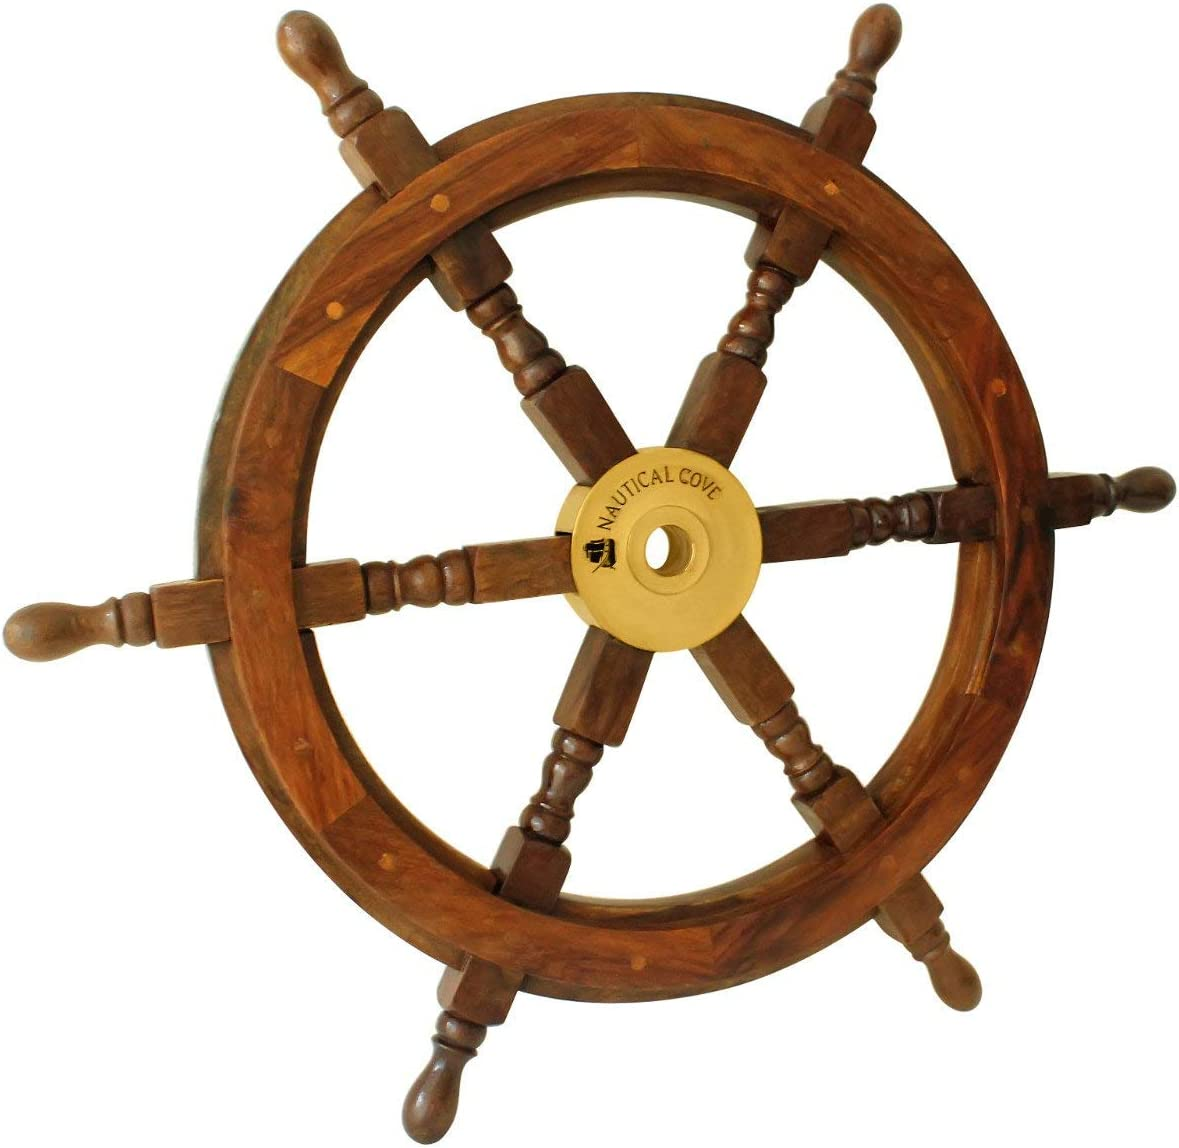 Nautical Cove Wooden Ship Wheel Pirate Decor, Ships Wheel for Home, Boats, and Walls 24 Diameter